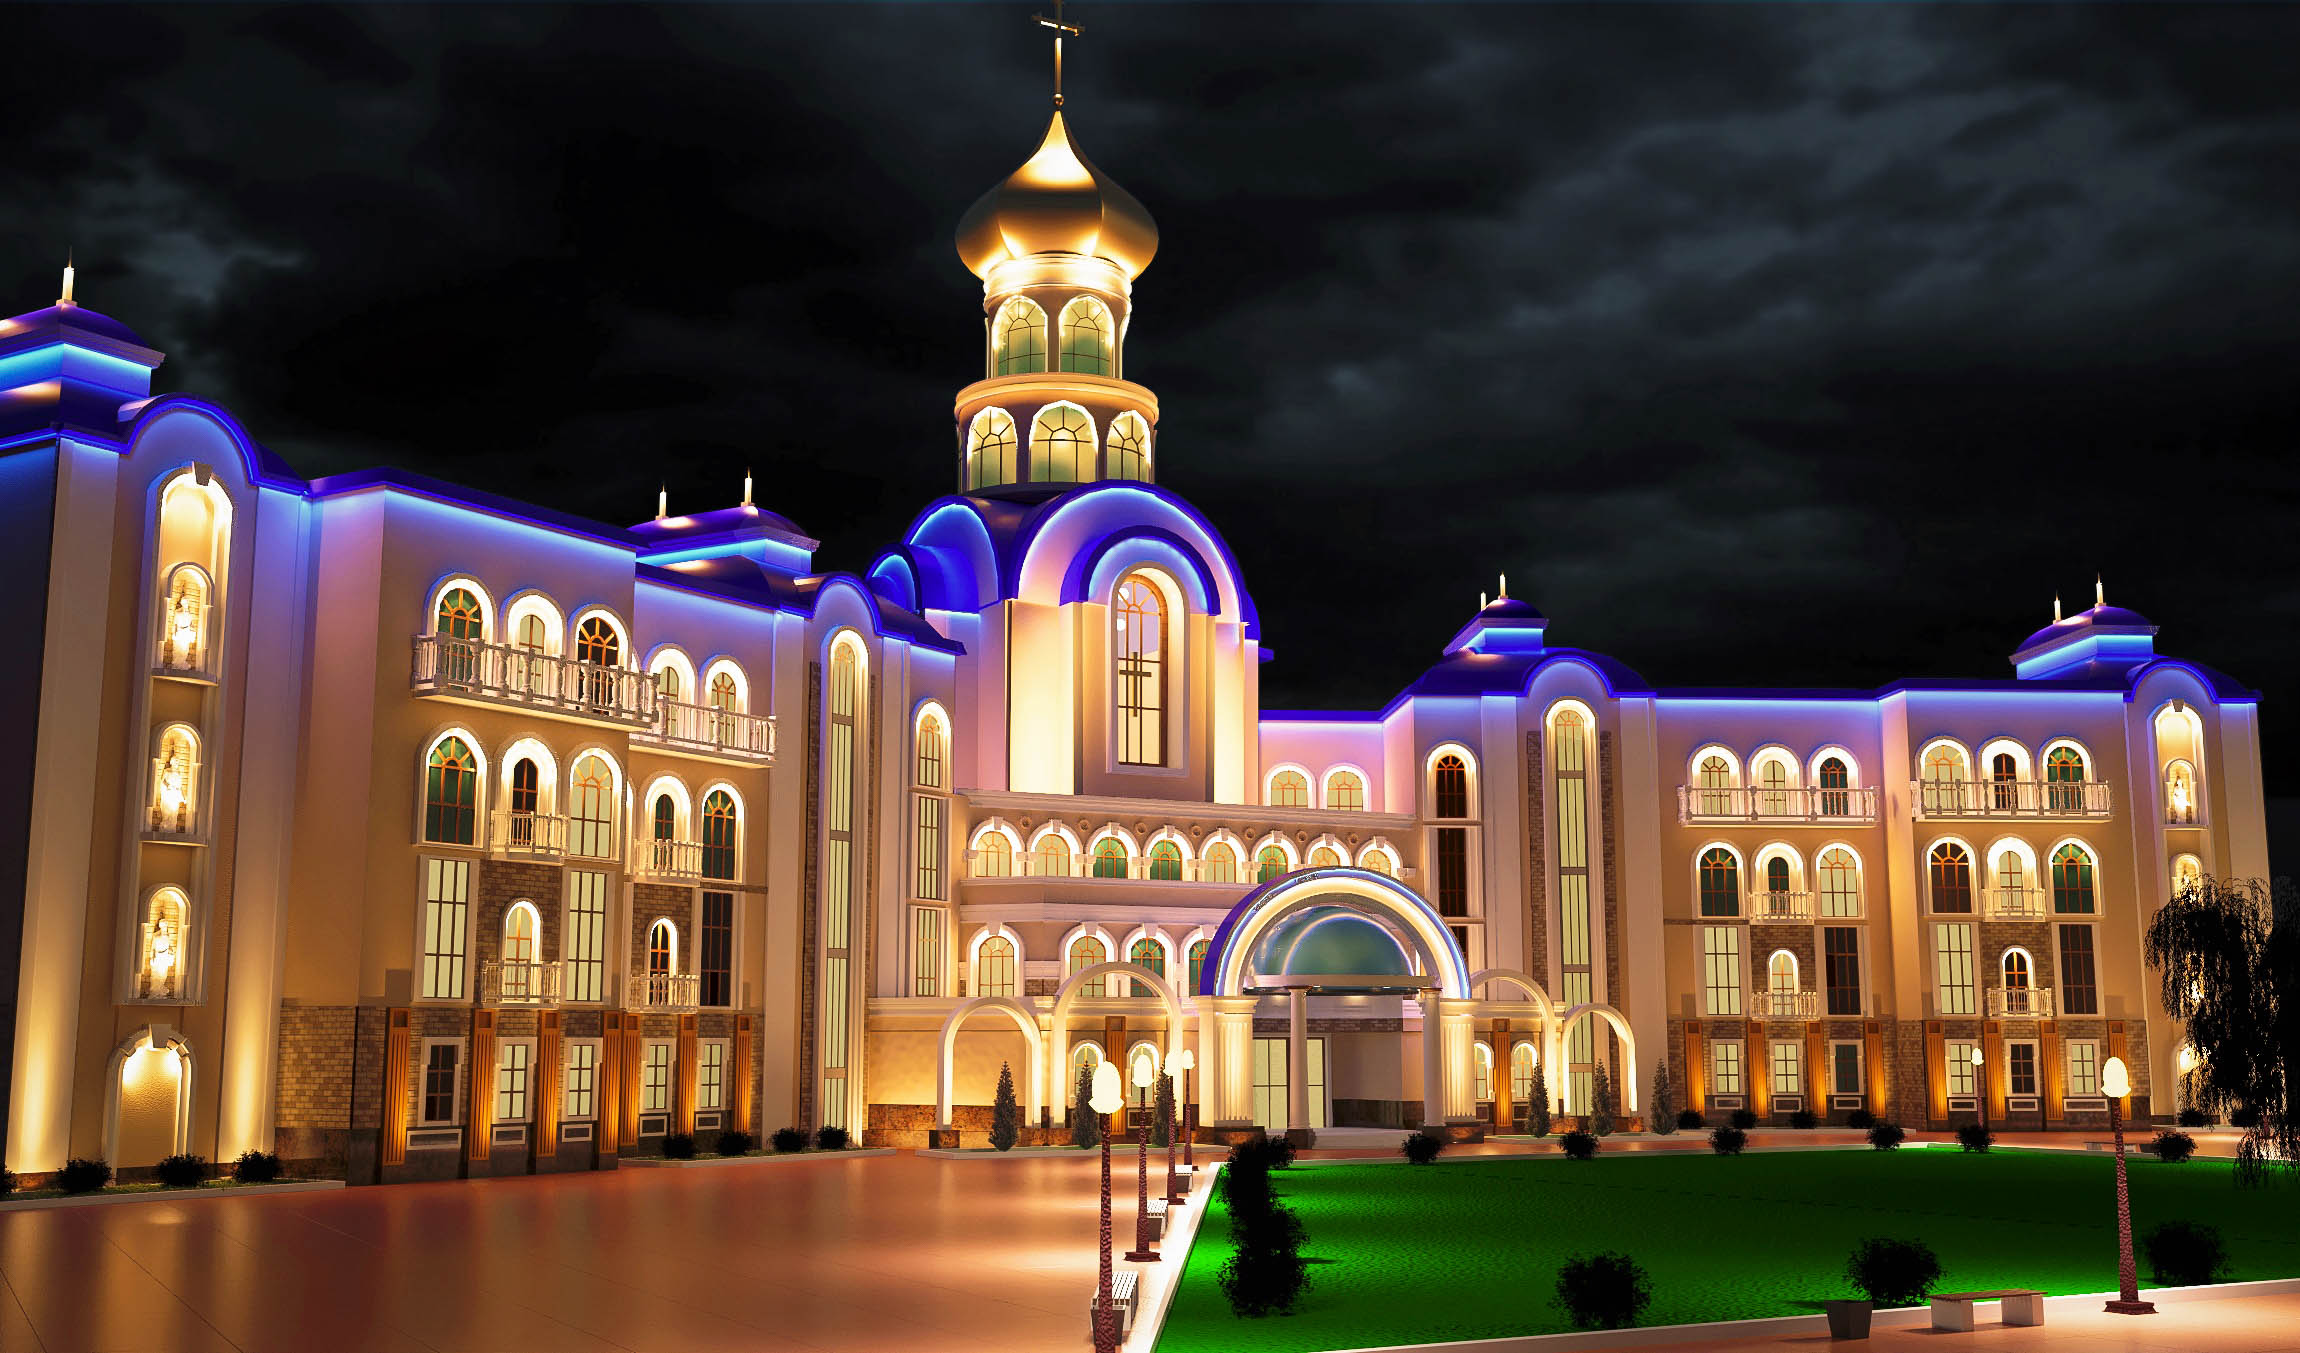 ODESSA CATHEDRAL SCHOOL (V-Ray) in 3d max vray 3.0 image